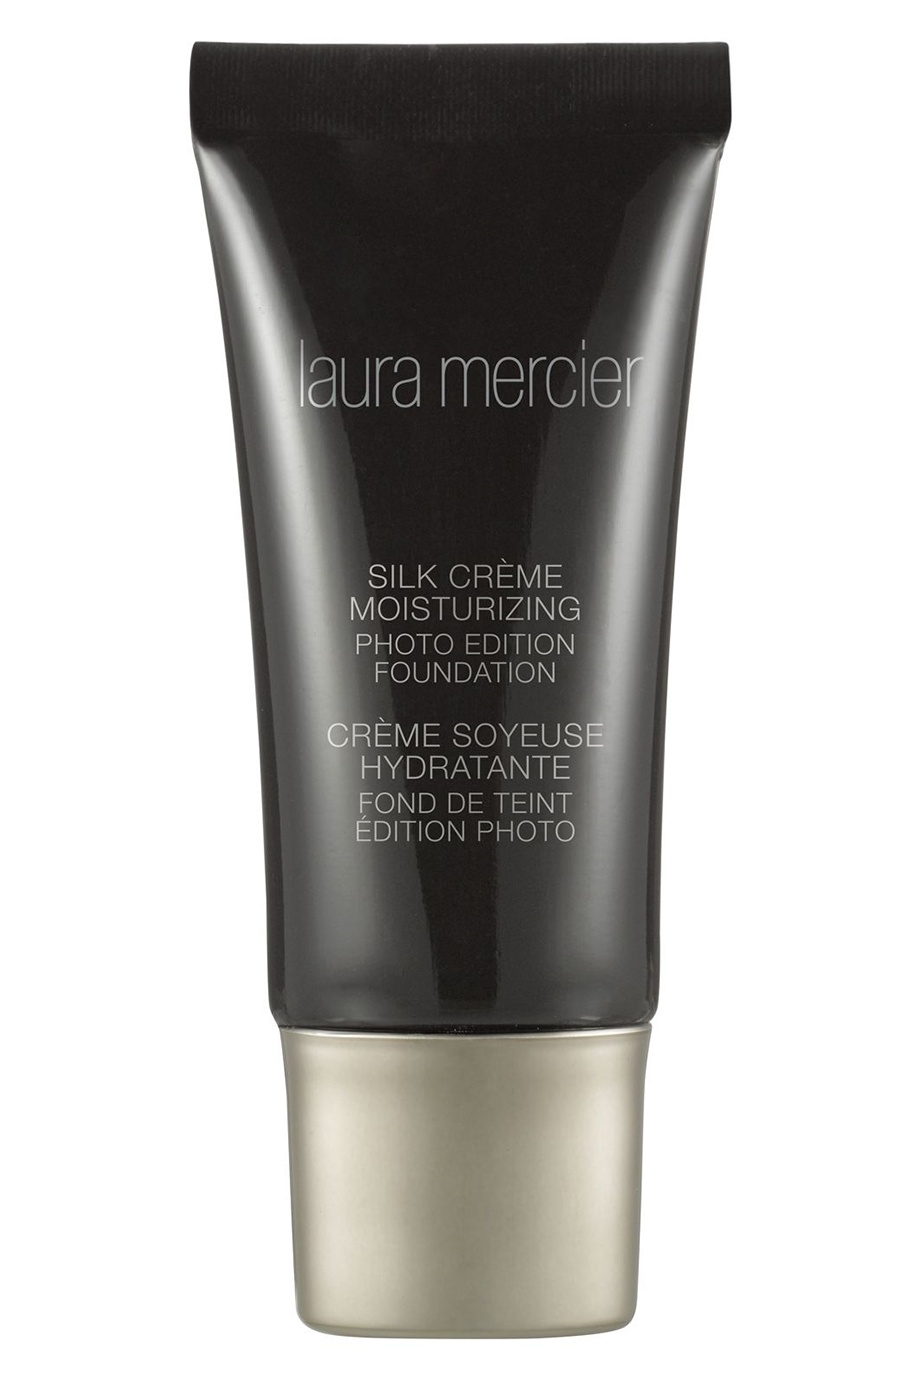 Тональная основа Silk Crème Moisturizing Photo Editon Sand Beige 30ml Laura Mercier (фото)